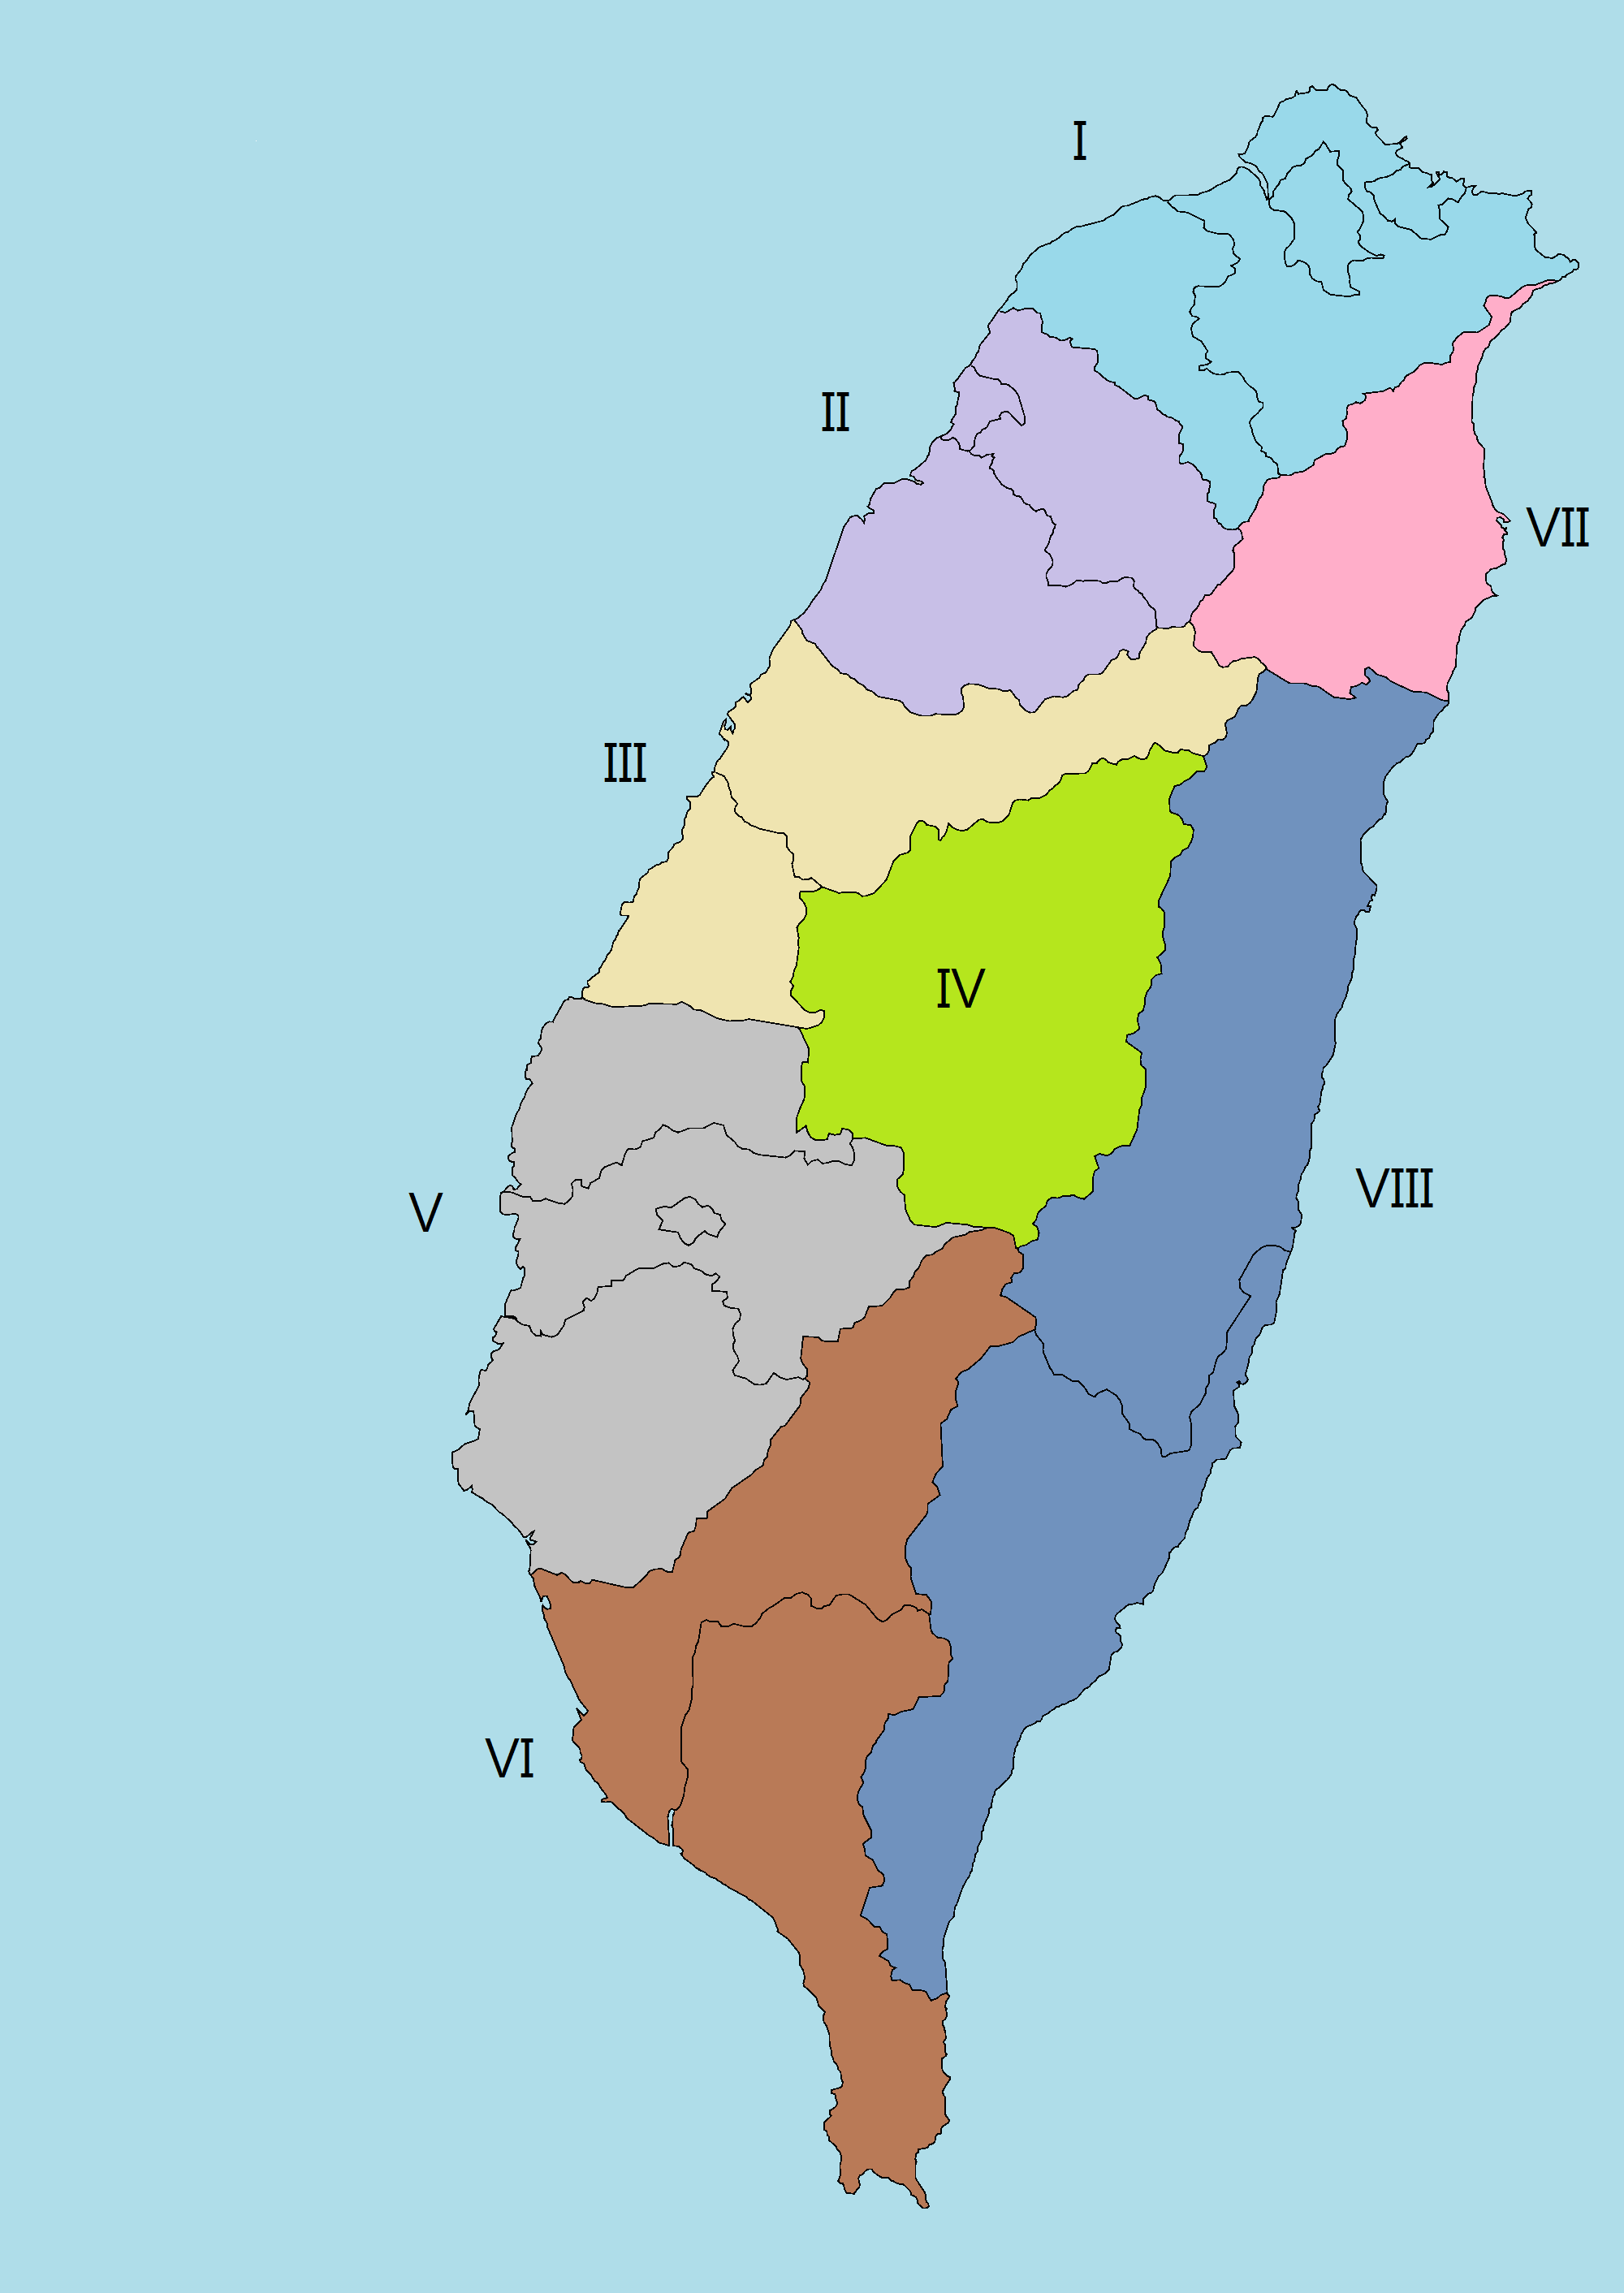 File:Taiwan map division of air condition.png.